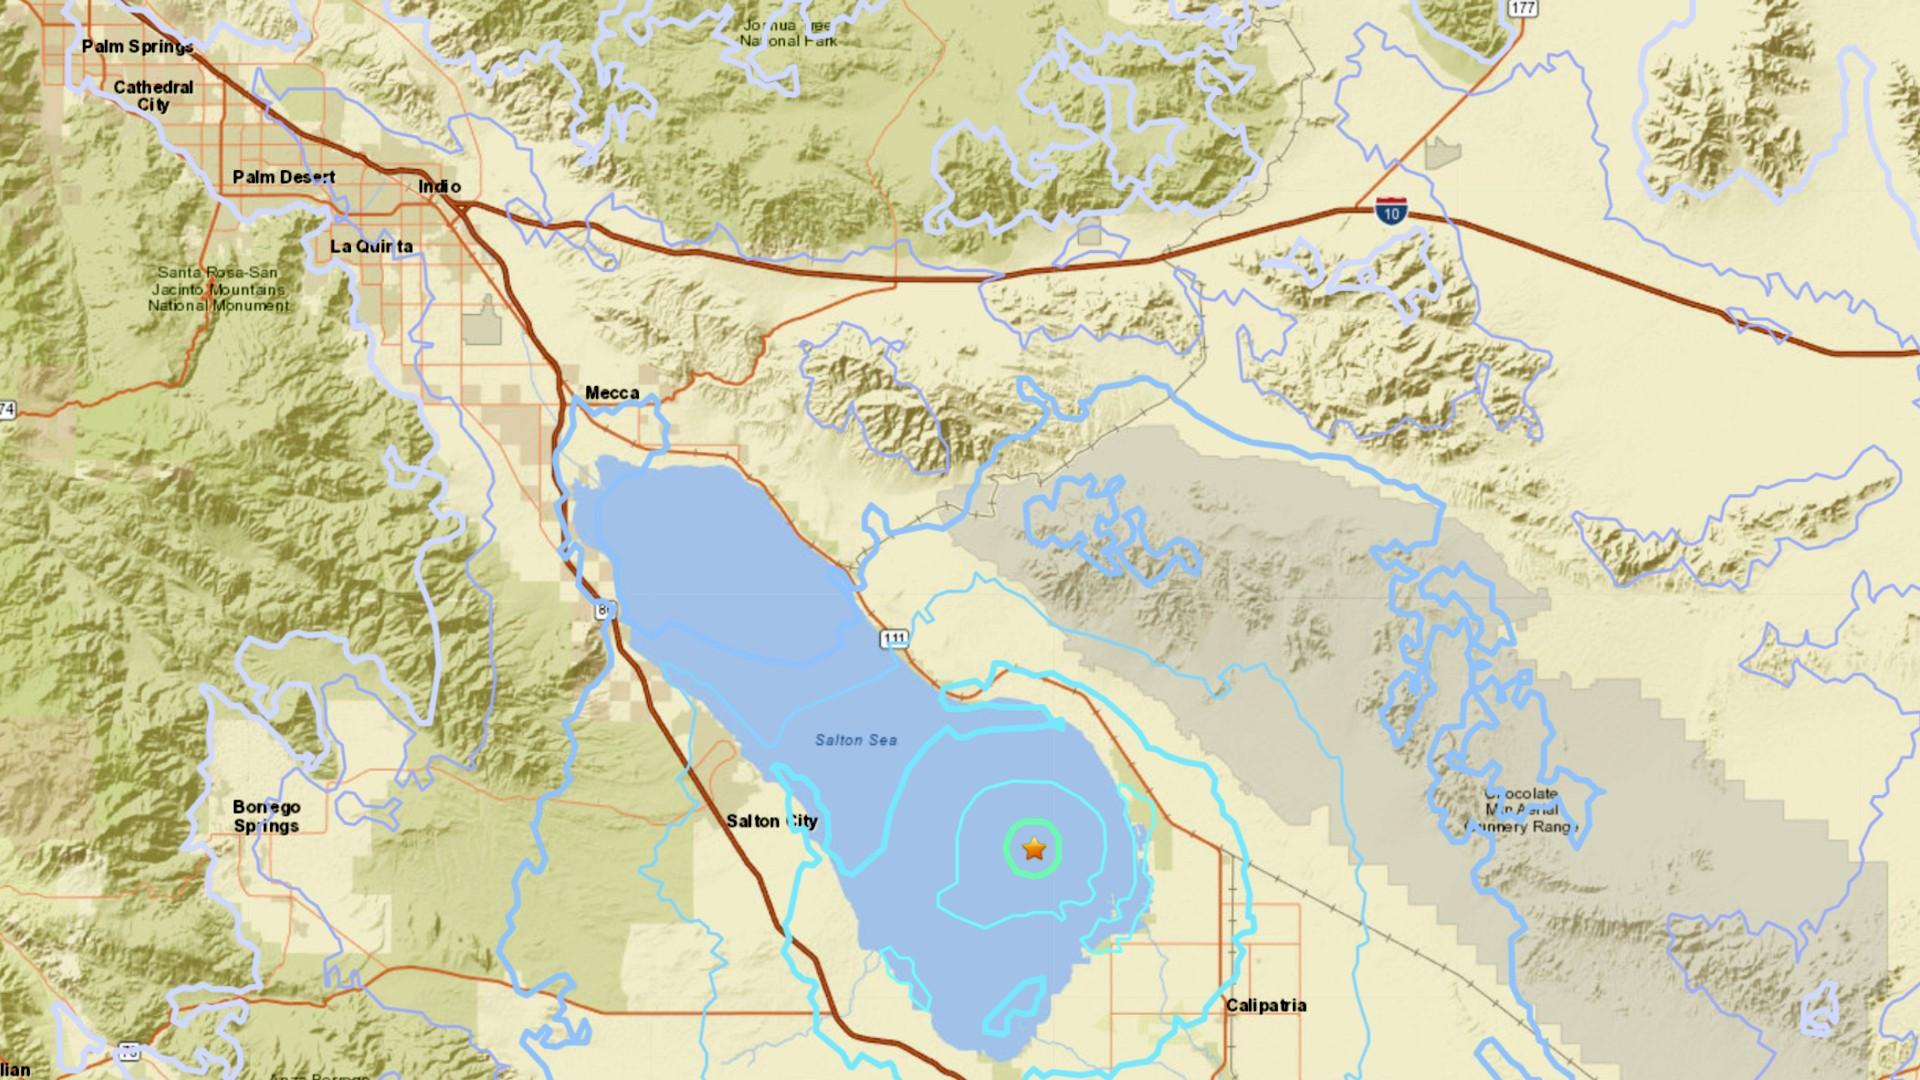 A 4.6 magnitude earthquake was reported at 8:56 a.m. 7 miles from Bombay Beach. (U.S. Geological Survey)